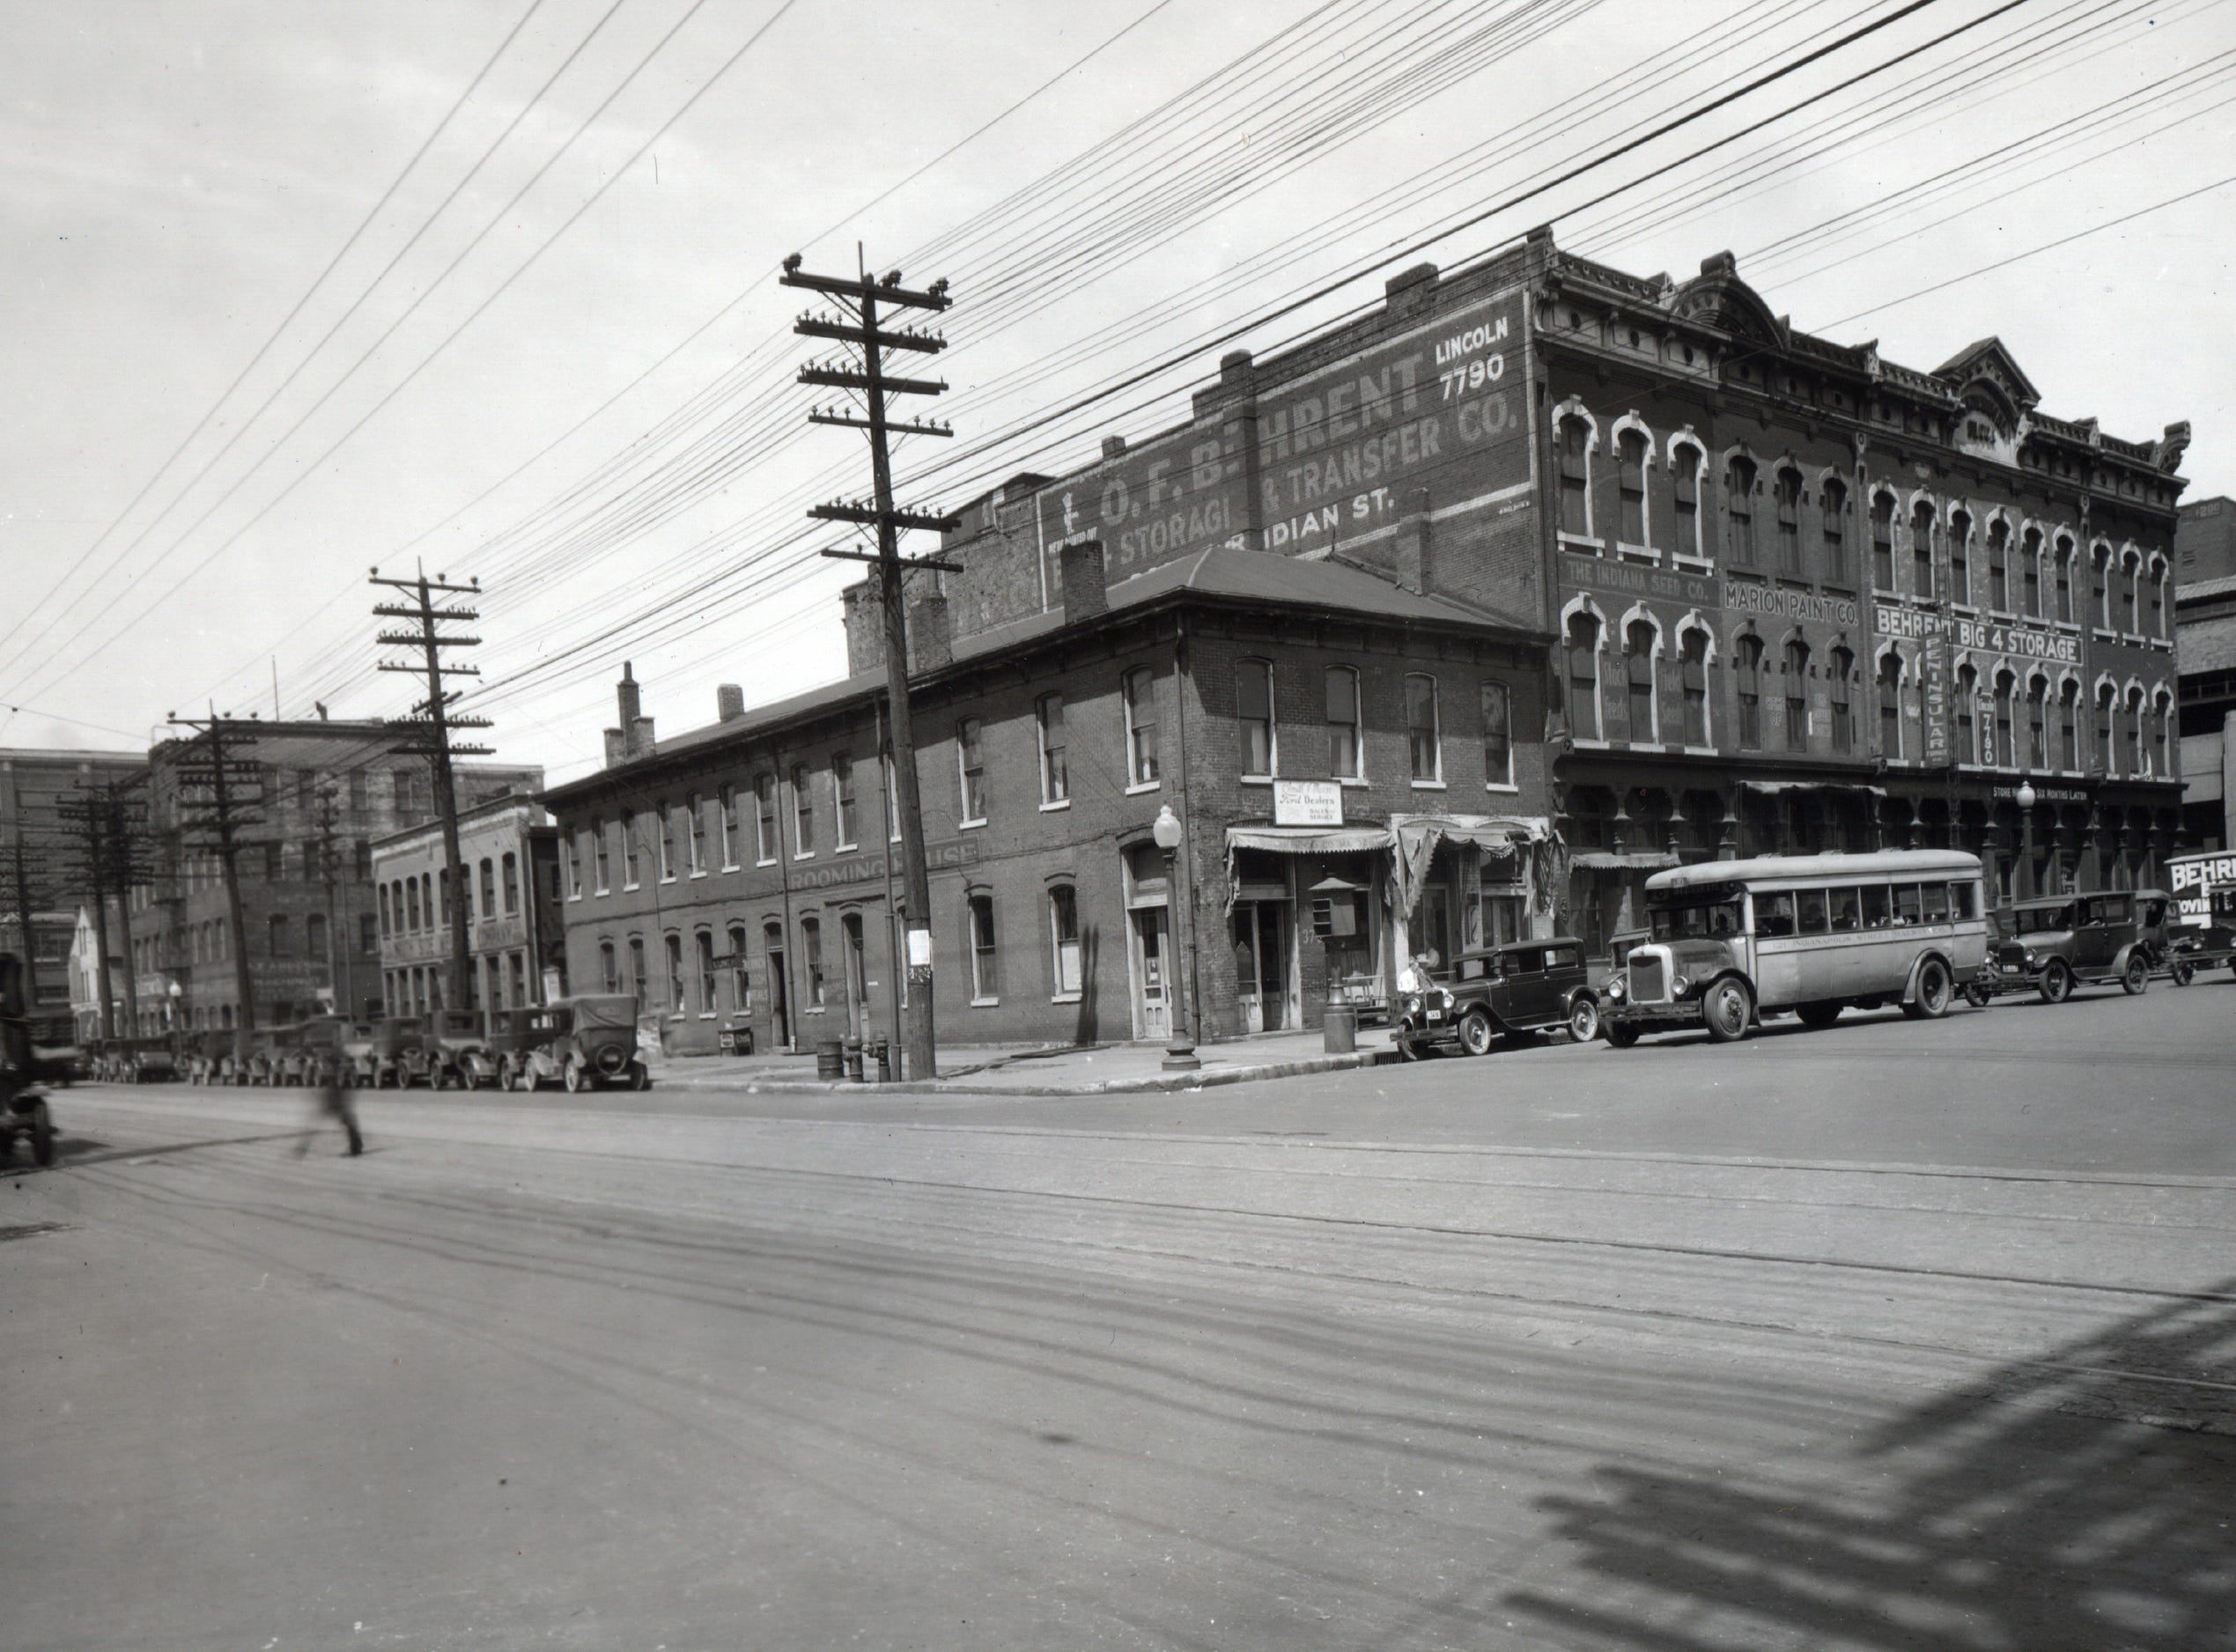 Intersection of Meridian and South looking northwest date unknown. The building at the corner is now the Slippery Noodle Inn.  The building was home to a rooming house and the front facing Meridian St. indicates it was Smith & Moon Ford Dealers sales and service. A barber shop is to the north.  The Behrent Storage & Transfer building also housed The Indiana Seed Co and Marion Paint Co. An Indianapolis Street Railway Co bus heads south on Meridian. The elevated railroad is to the right. Along South Street behind the rooming house is South Side Welding Company